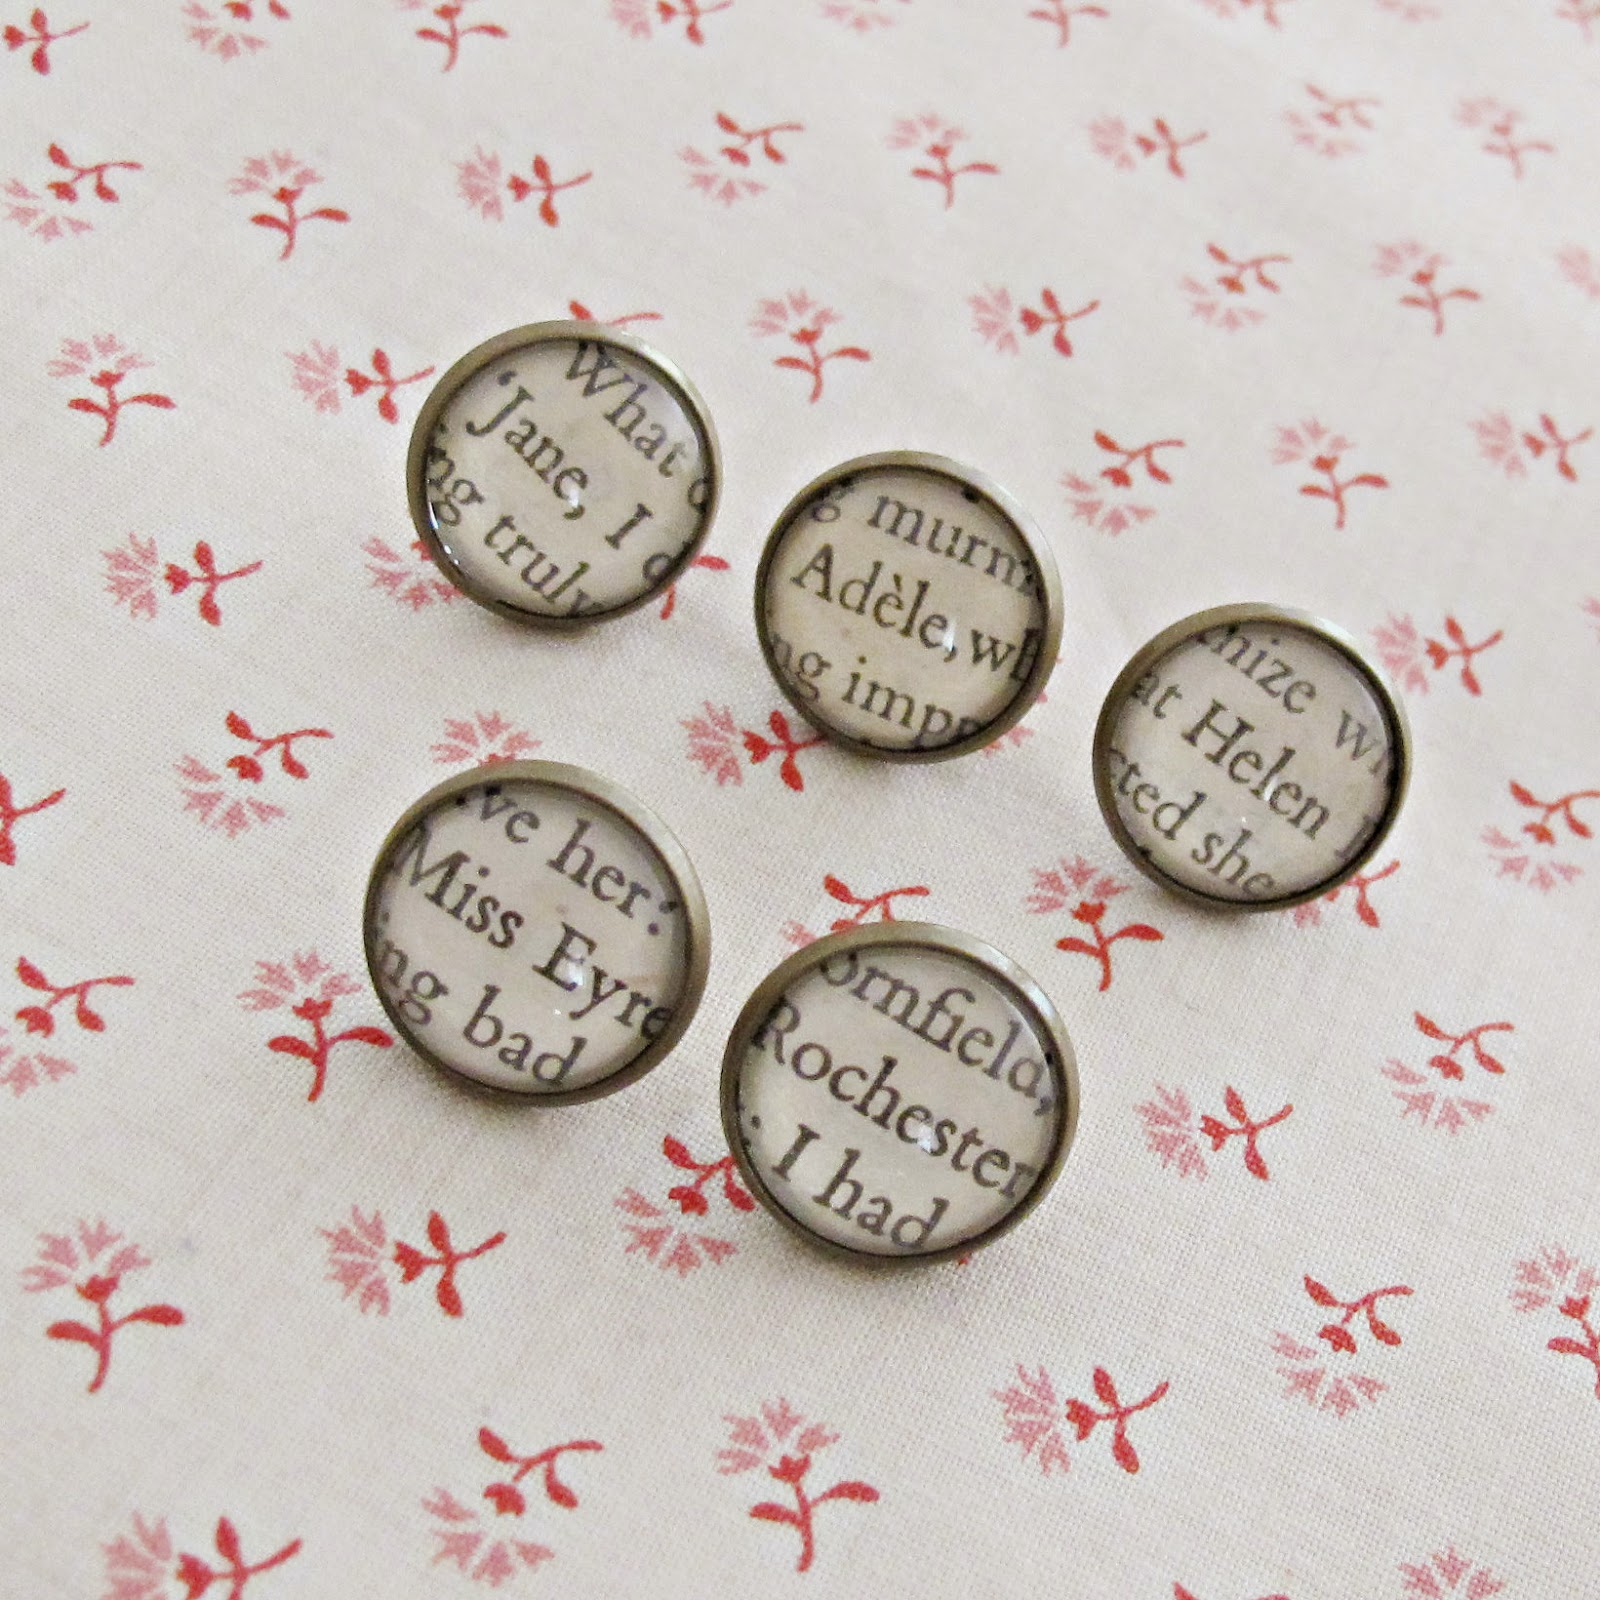 image thumbtack set jane eyre push pins pushpins charlotte bronte mr rochester miss eyre adele varens helen burns home office work office pinboard